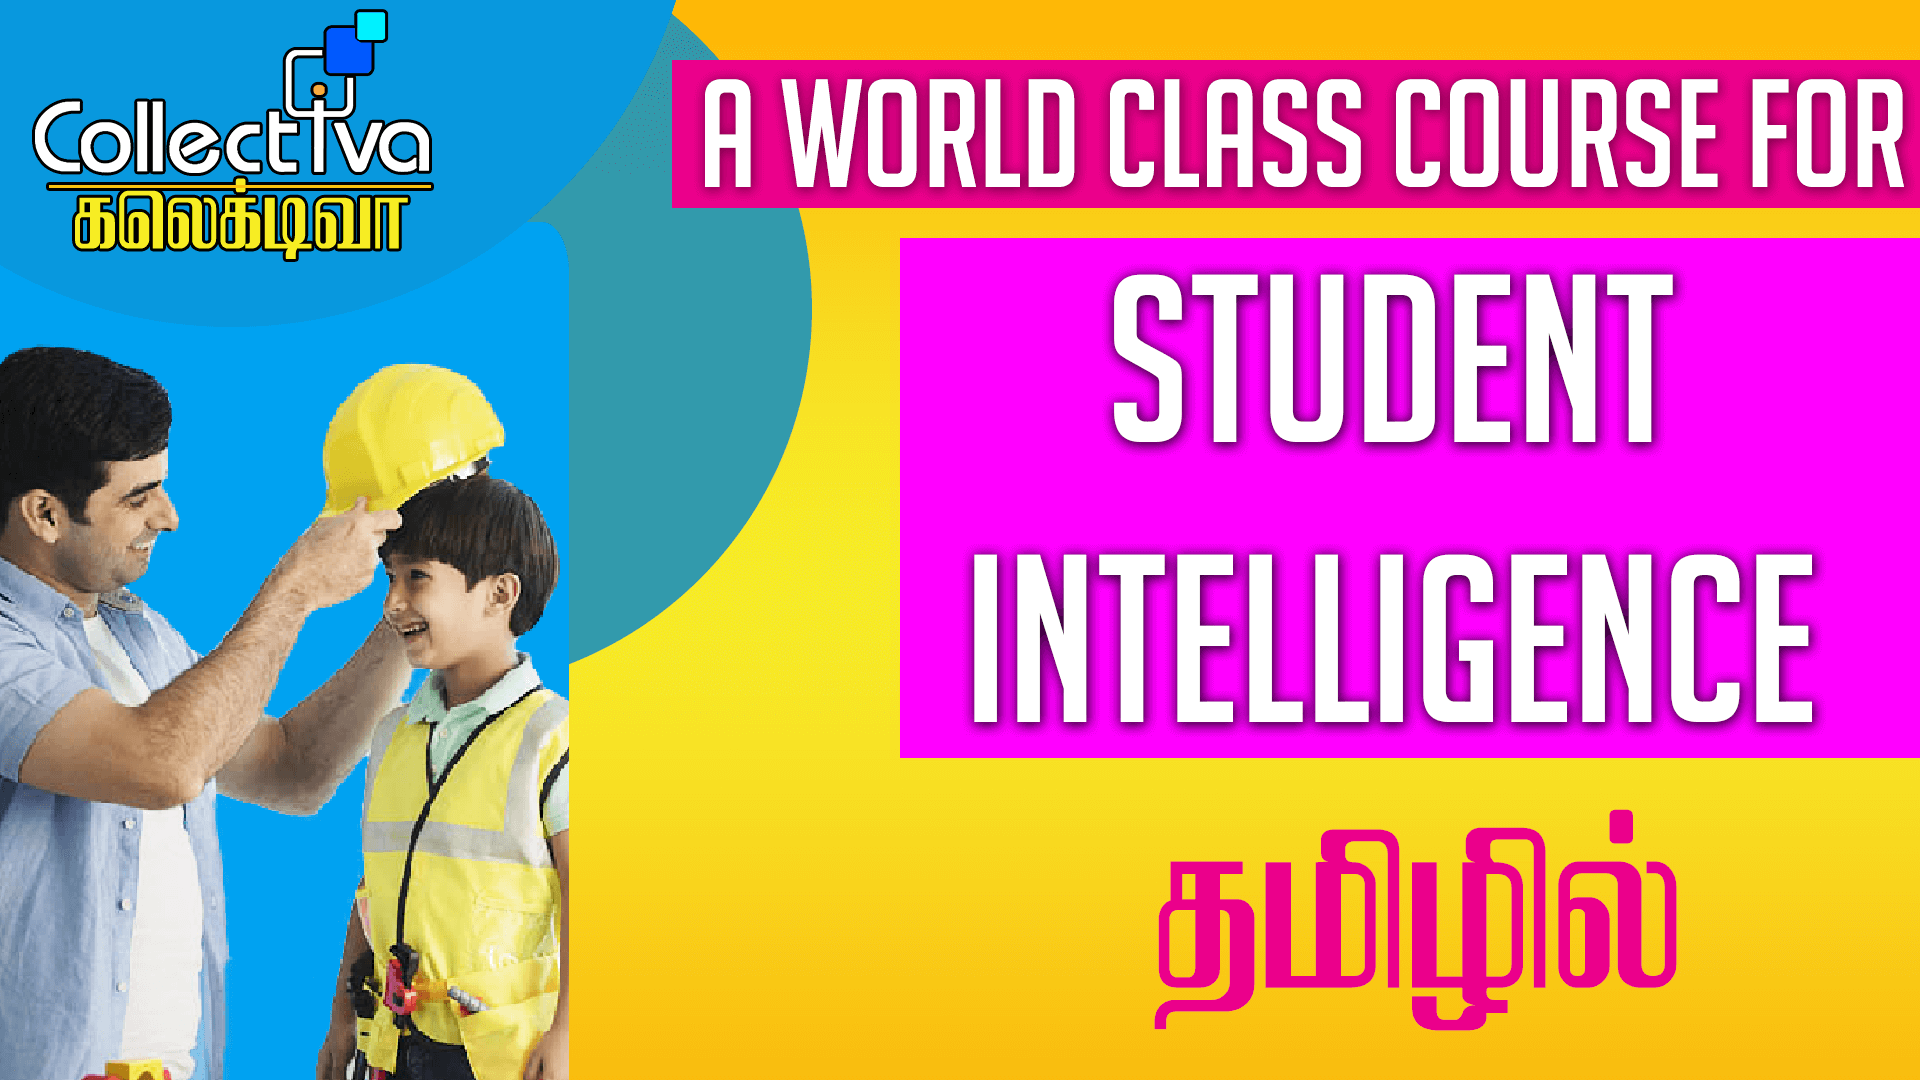 Student Intelligence Package